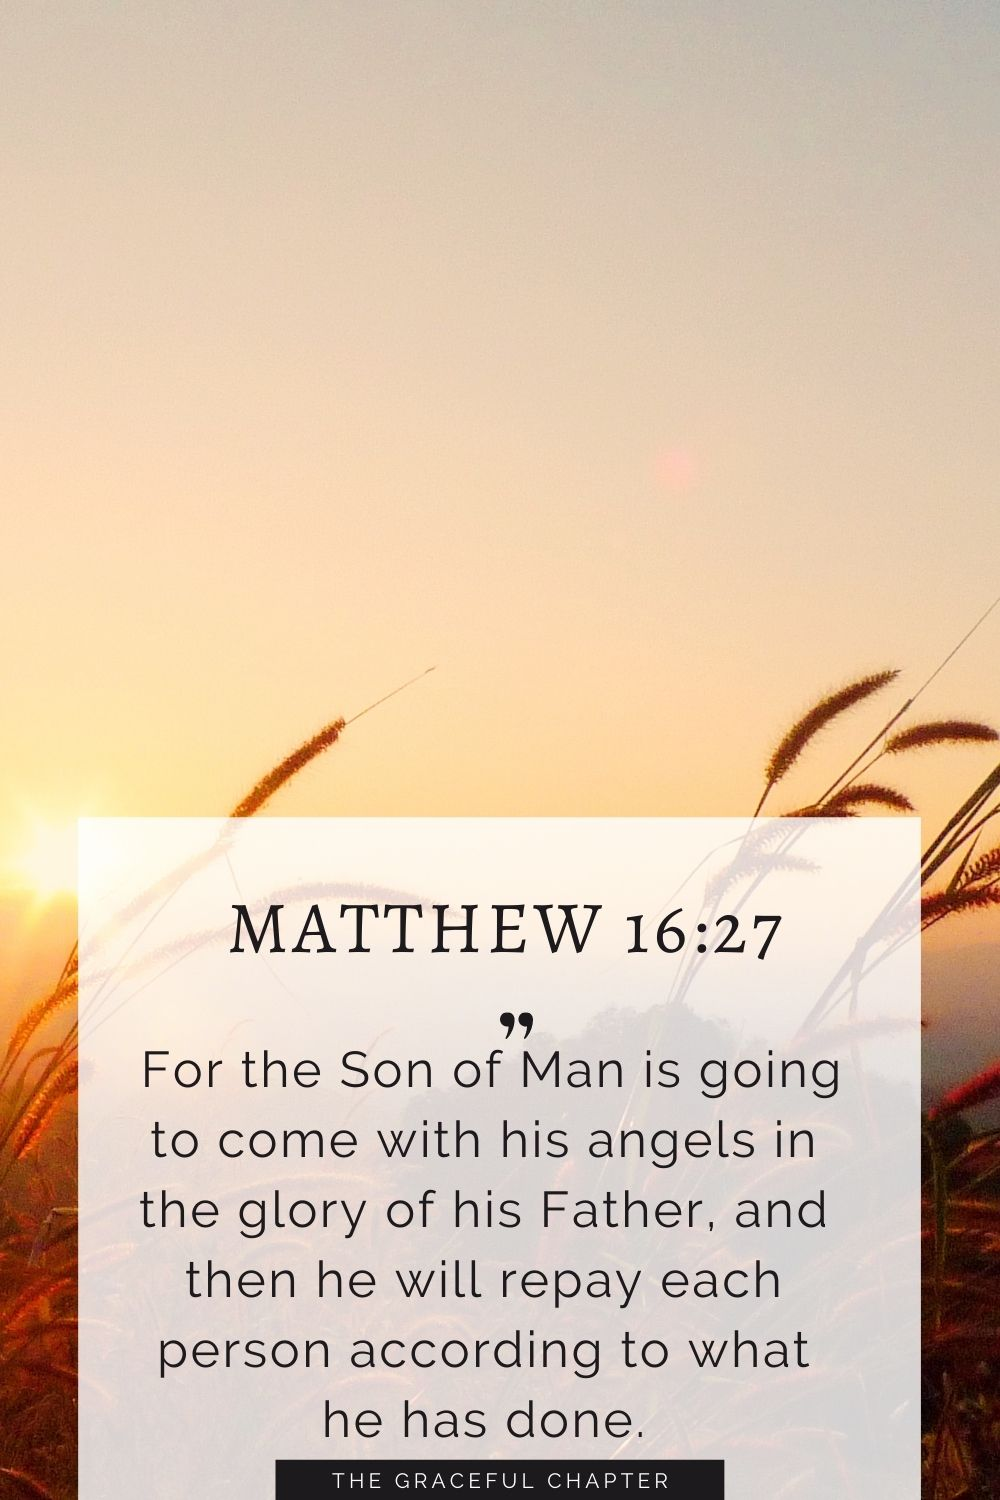 For the Son of Man is going to come with his angels in the glory of his Father, and then he will repay each person according to what he has done. Matthew 16:27